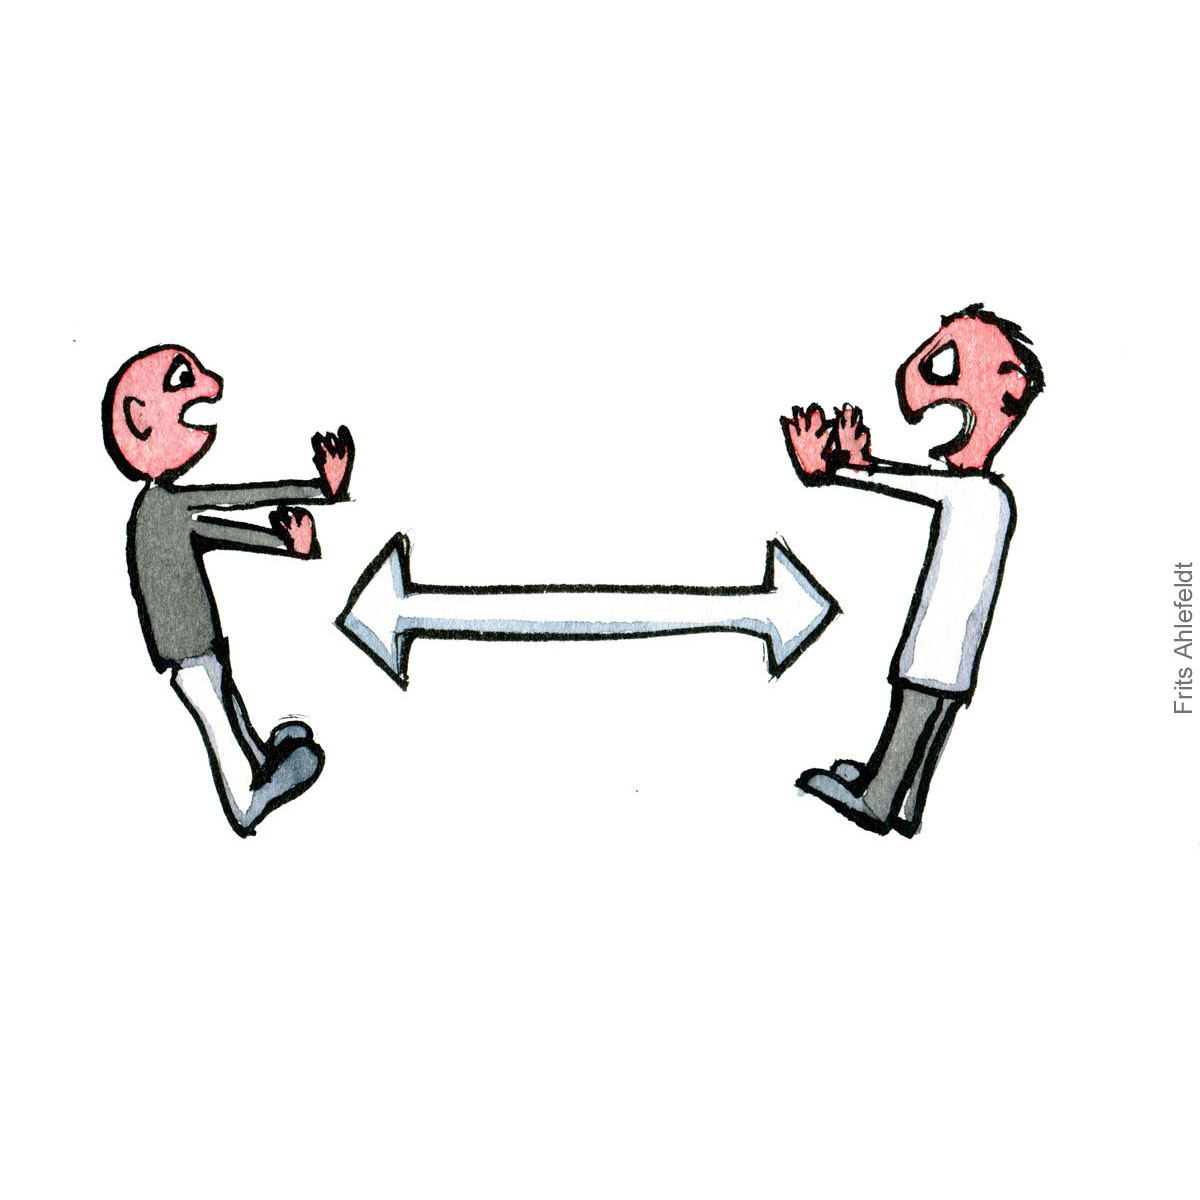 of two people keeping a distance. Isololation prawing Psychology illustration by Frits Ahlefeldt